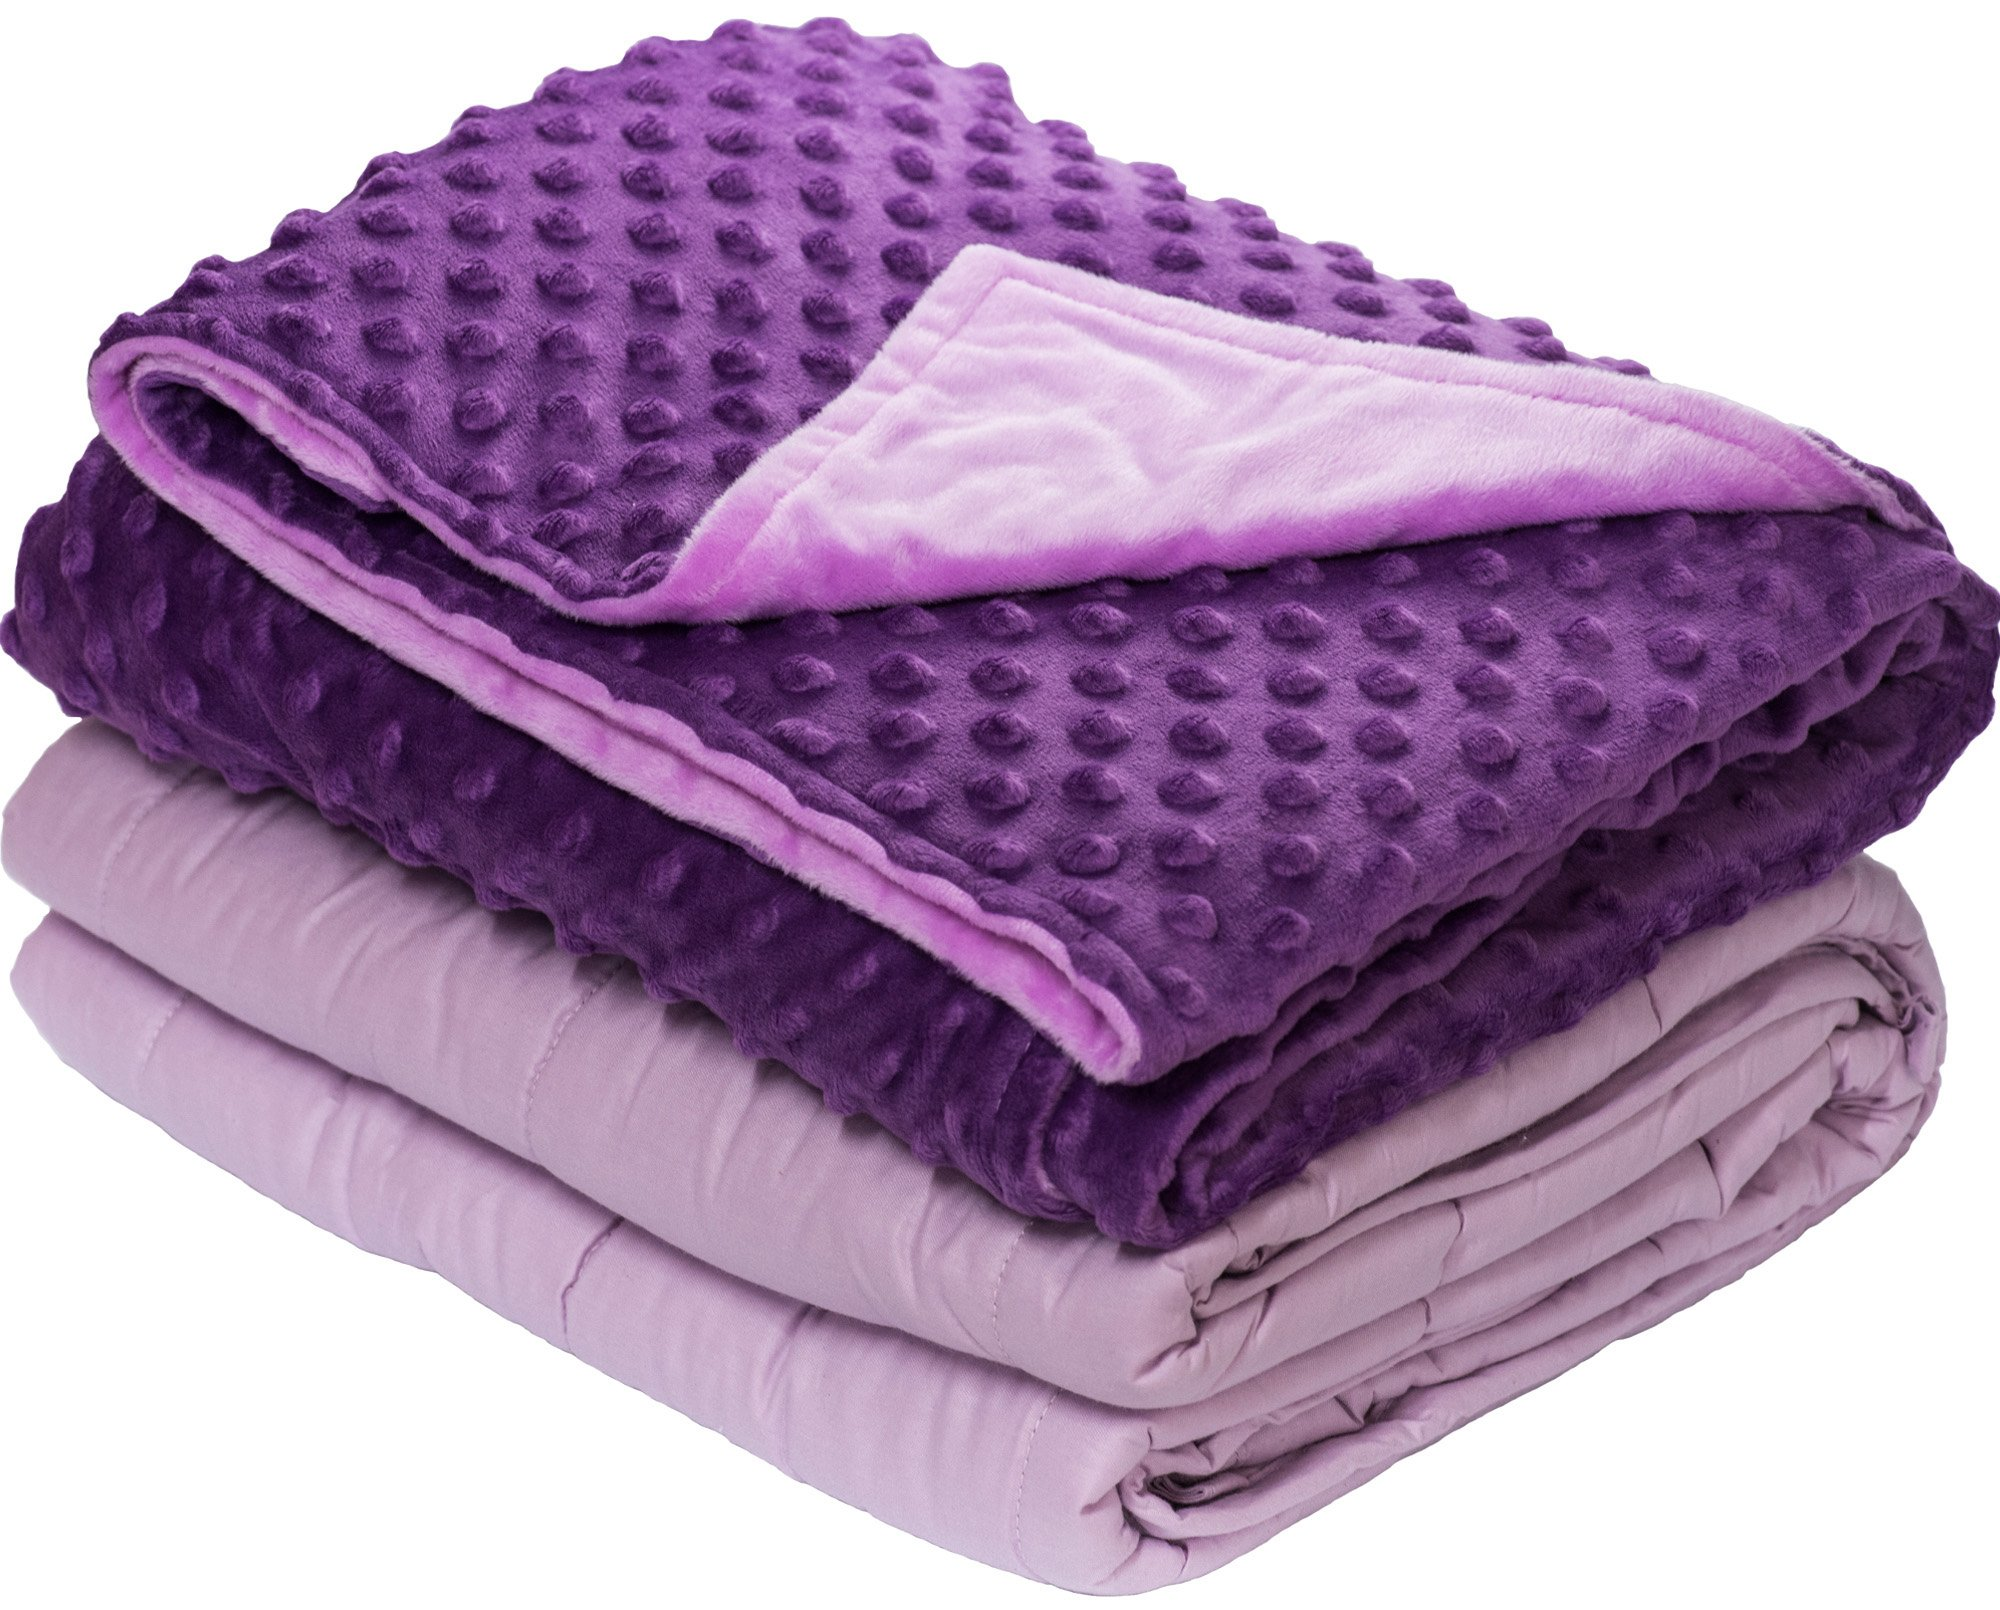 5lb Weighted Blanket with Dot Minky Cover for Kids 40-60lb Individual.Help Children with Sleep Issues Anxiety Stress Insomnia (Inner Light Violet/Cover Dark Violet & Violet, 36''x48'' 5 lbs)